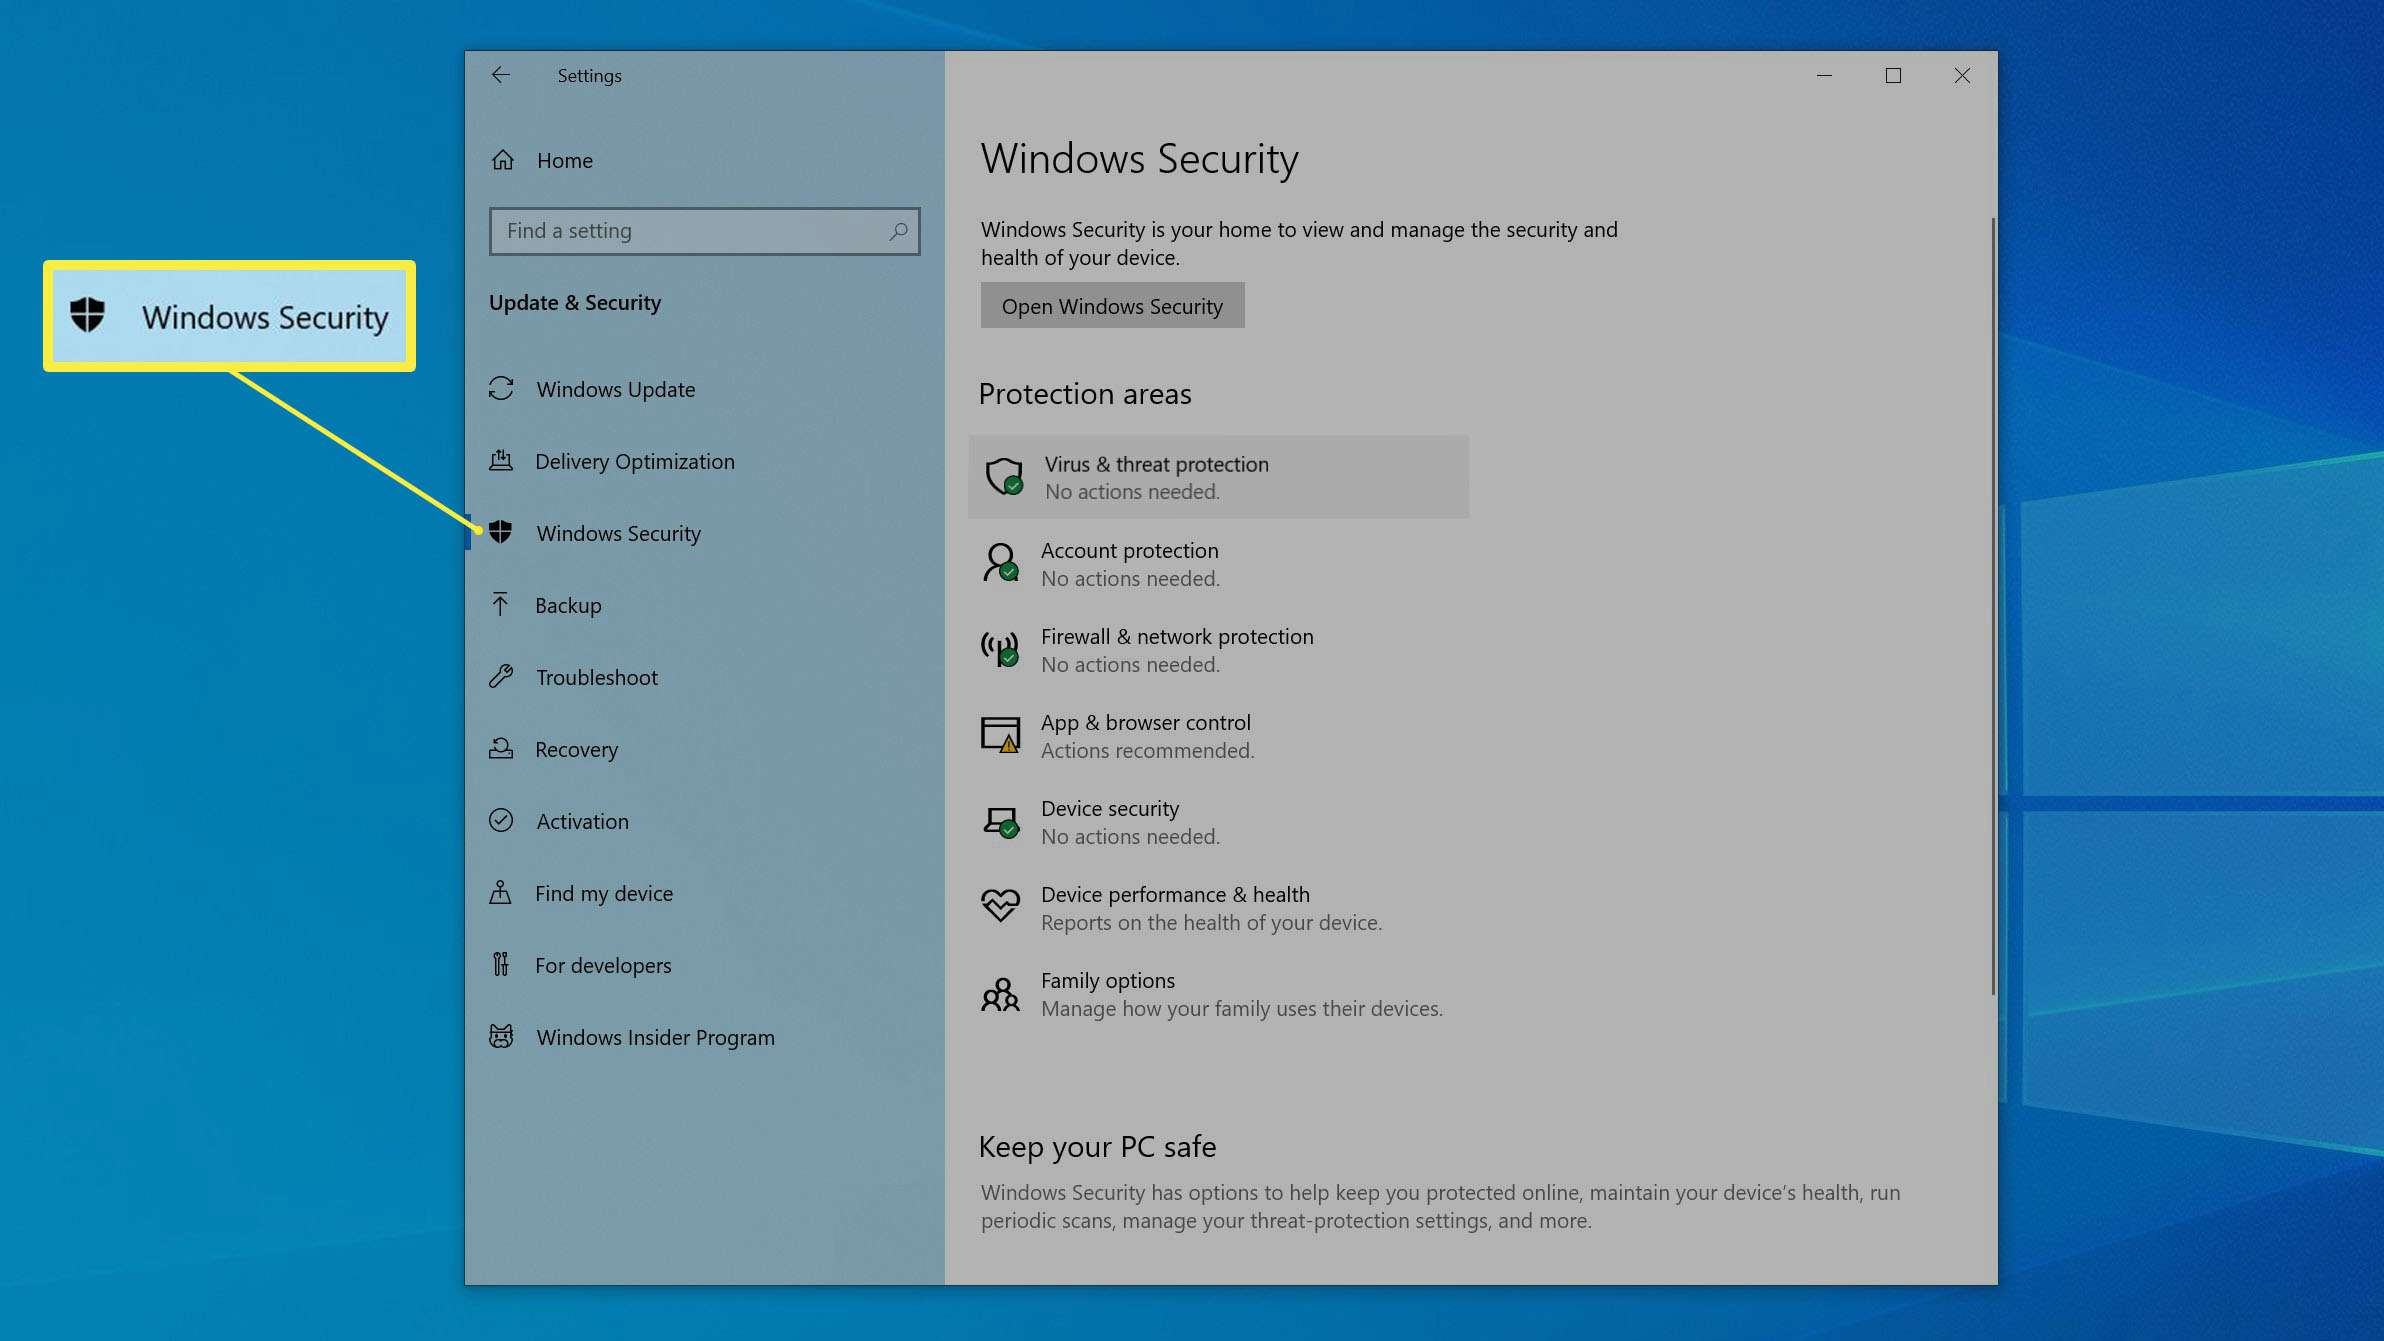 The Windows Security page in the Settings app.